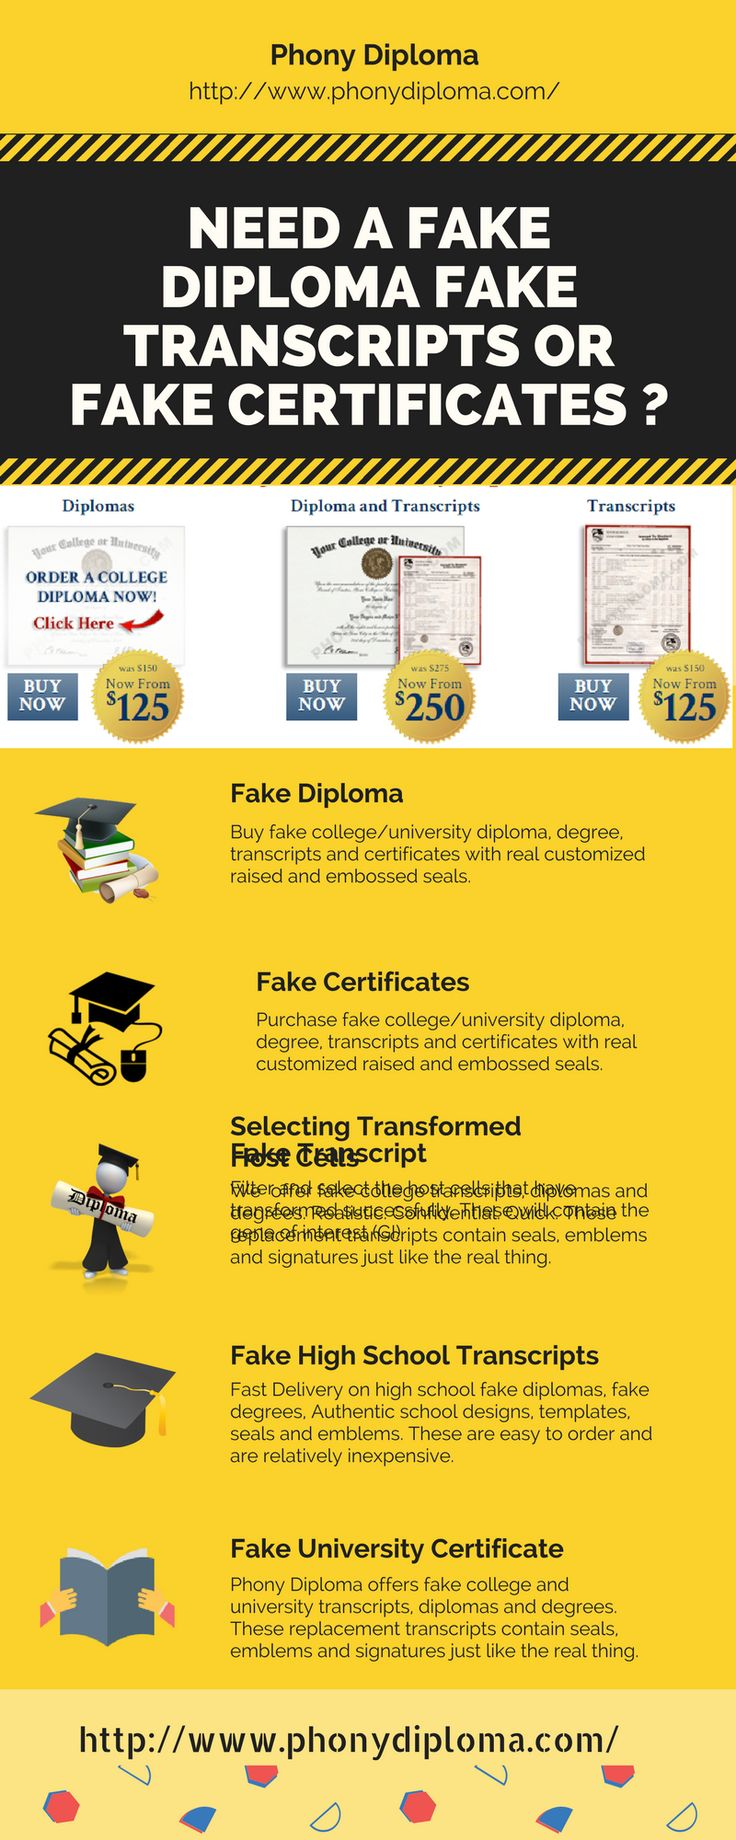 Get any kind of fake degree from phony diploma .We offer  fake college/university diploma, degree, transcripts and certificates with real modified raised and embossed seals.